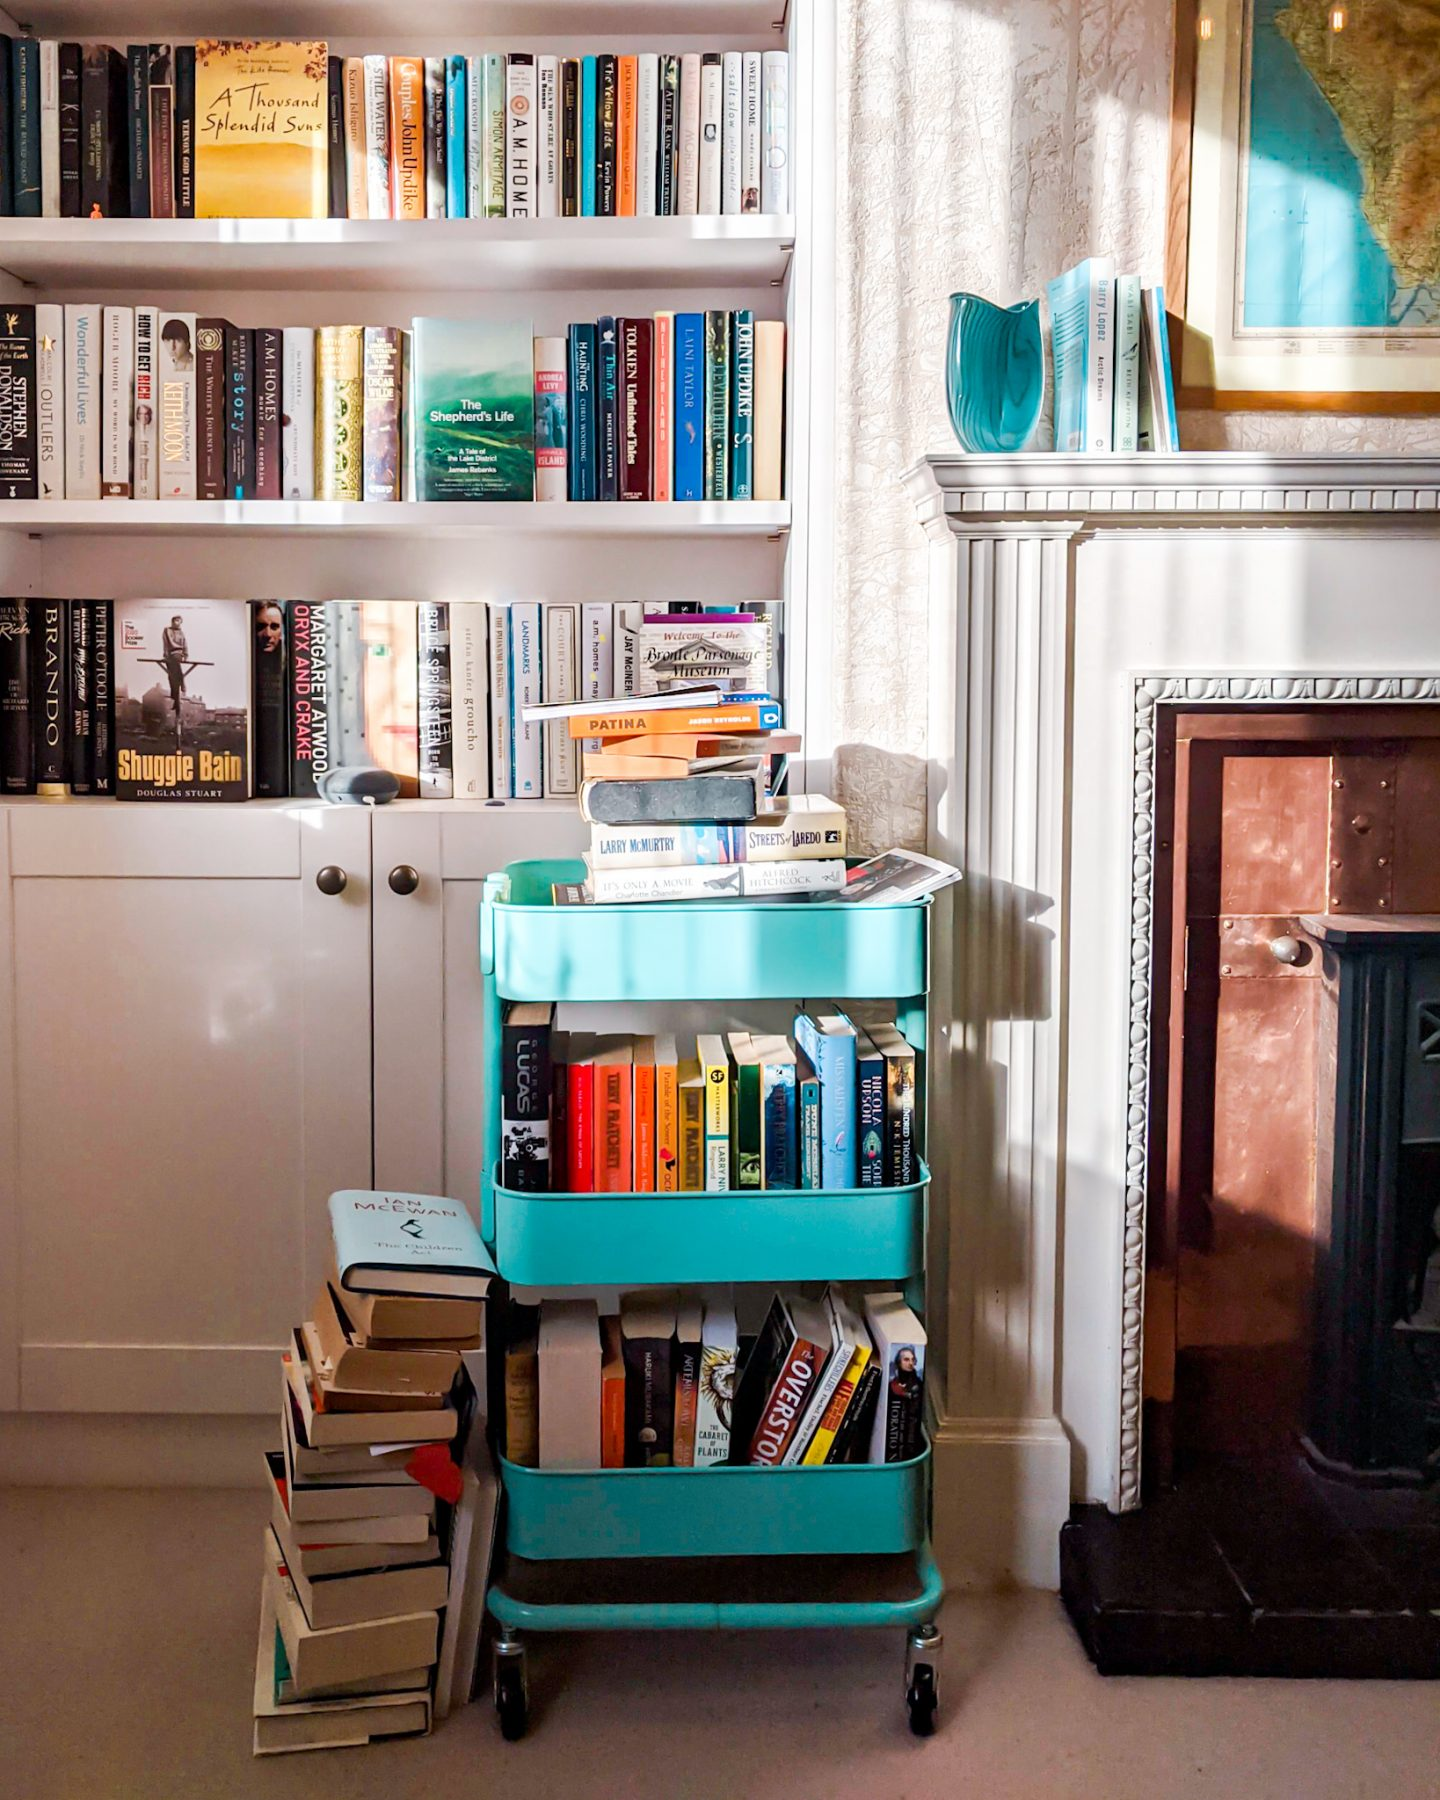 A home library with a book trolley illustrated The BFR Round-Up February 2021